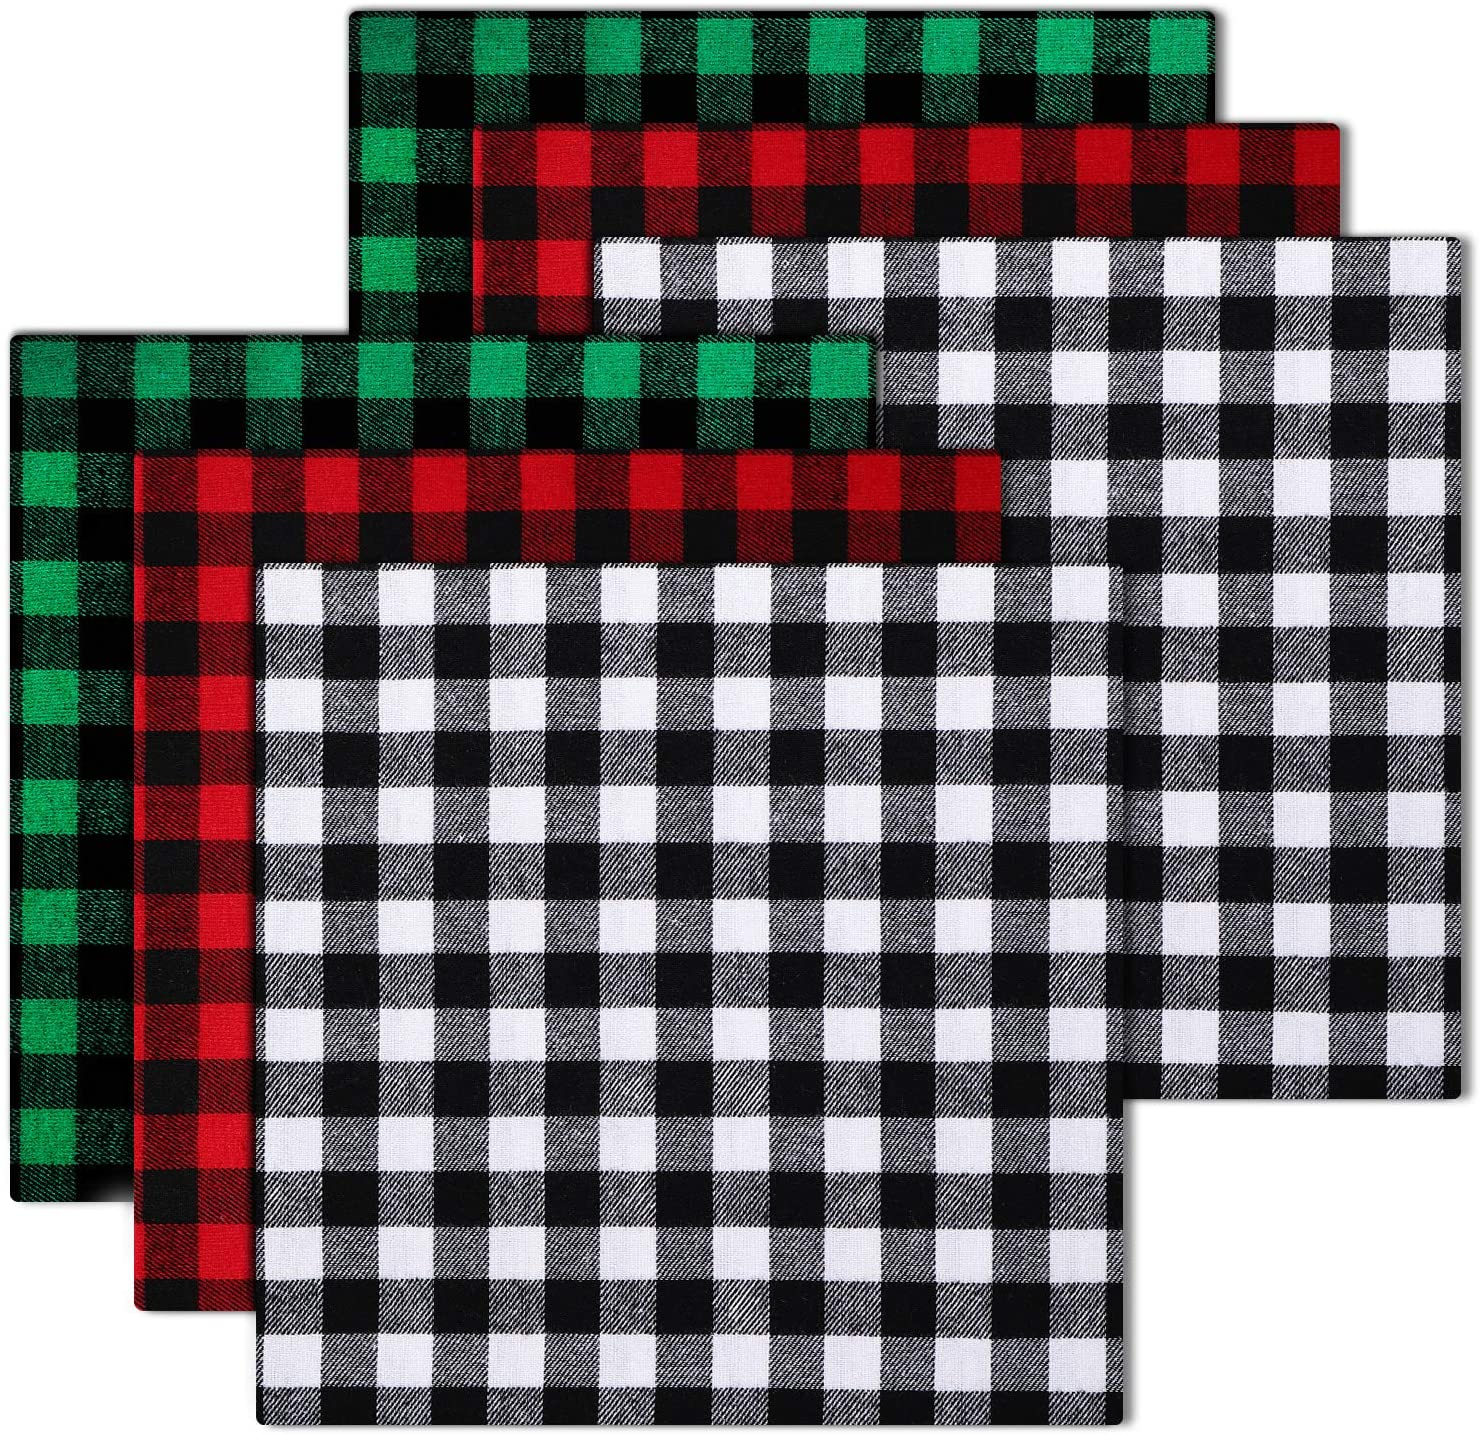 6 Pieces Christmas Buffalo Plaid Cotton Fabric 20 x 20 Inch Christmas Printing Quilting Fabric Squares Black and White Plaid Sewing Patchwork Fabric Christmas DIY Fabric for DIY Craft Supplies